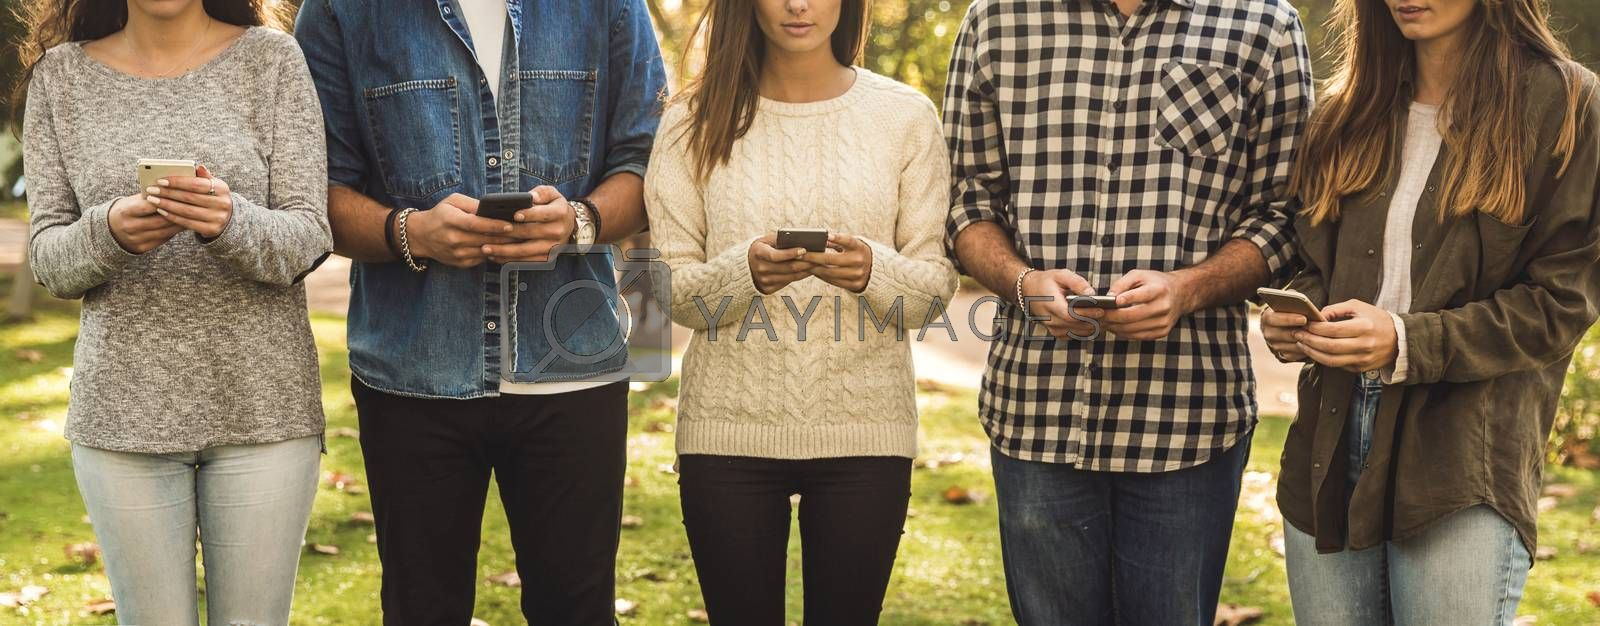 Group of friends distracted with social networks on their phones